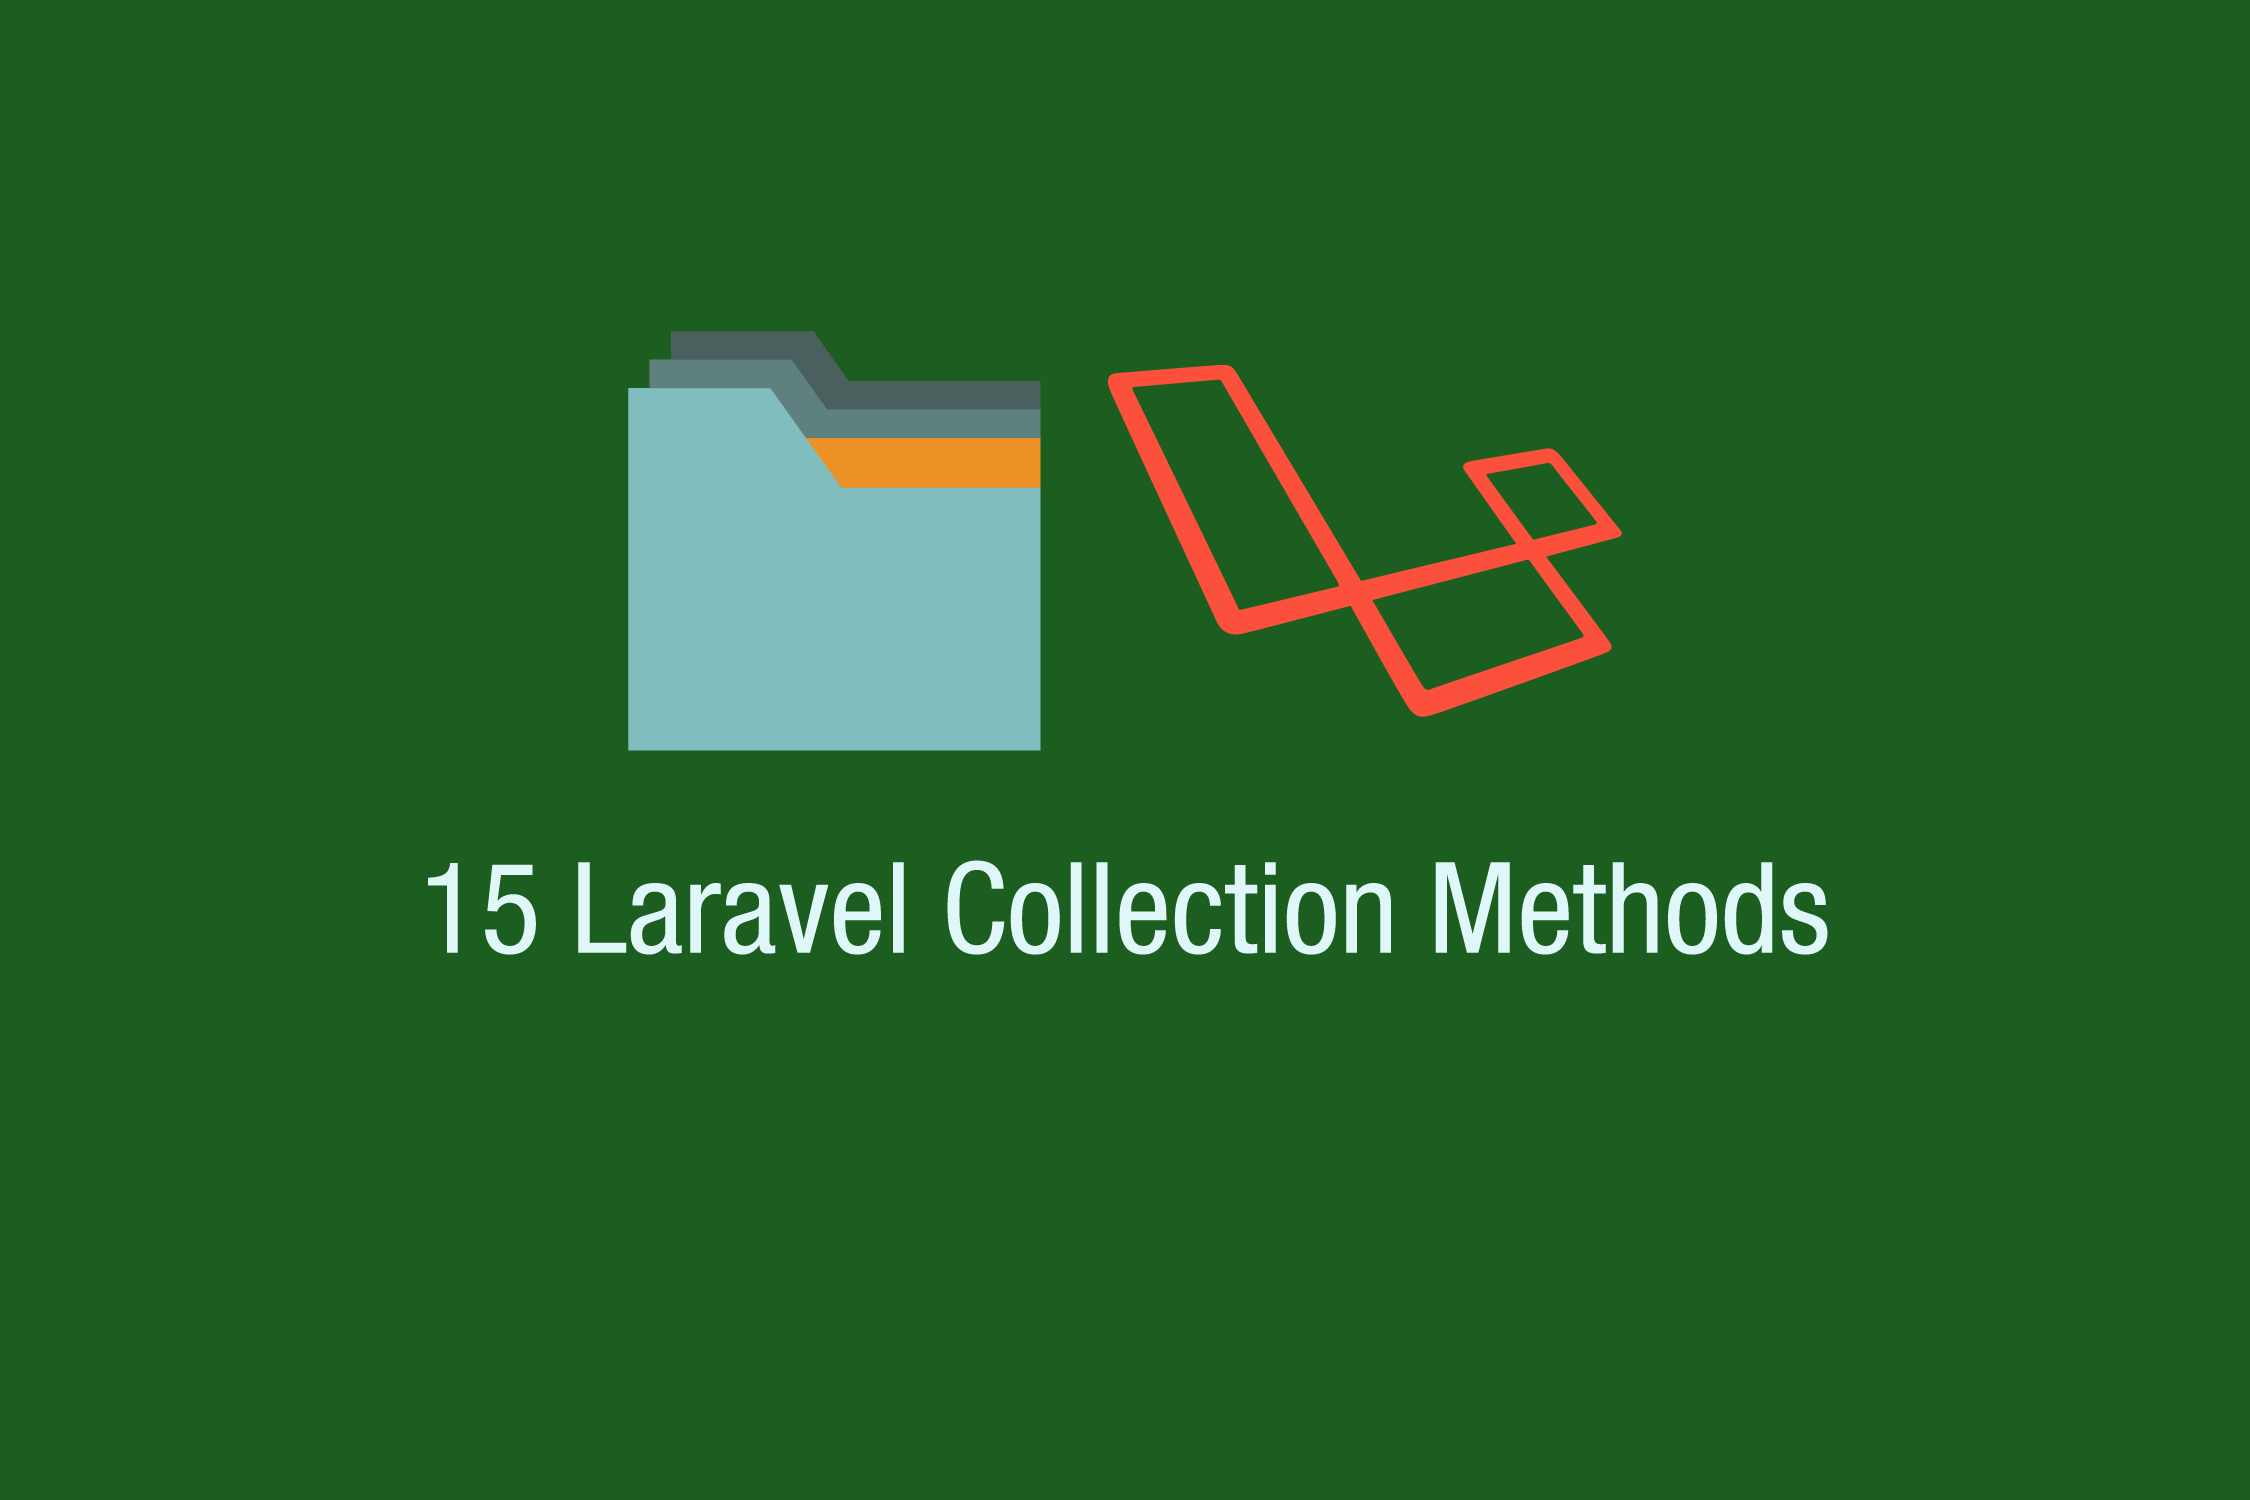 15 Awesome Laravel collection methods